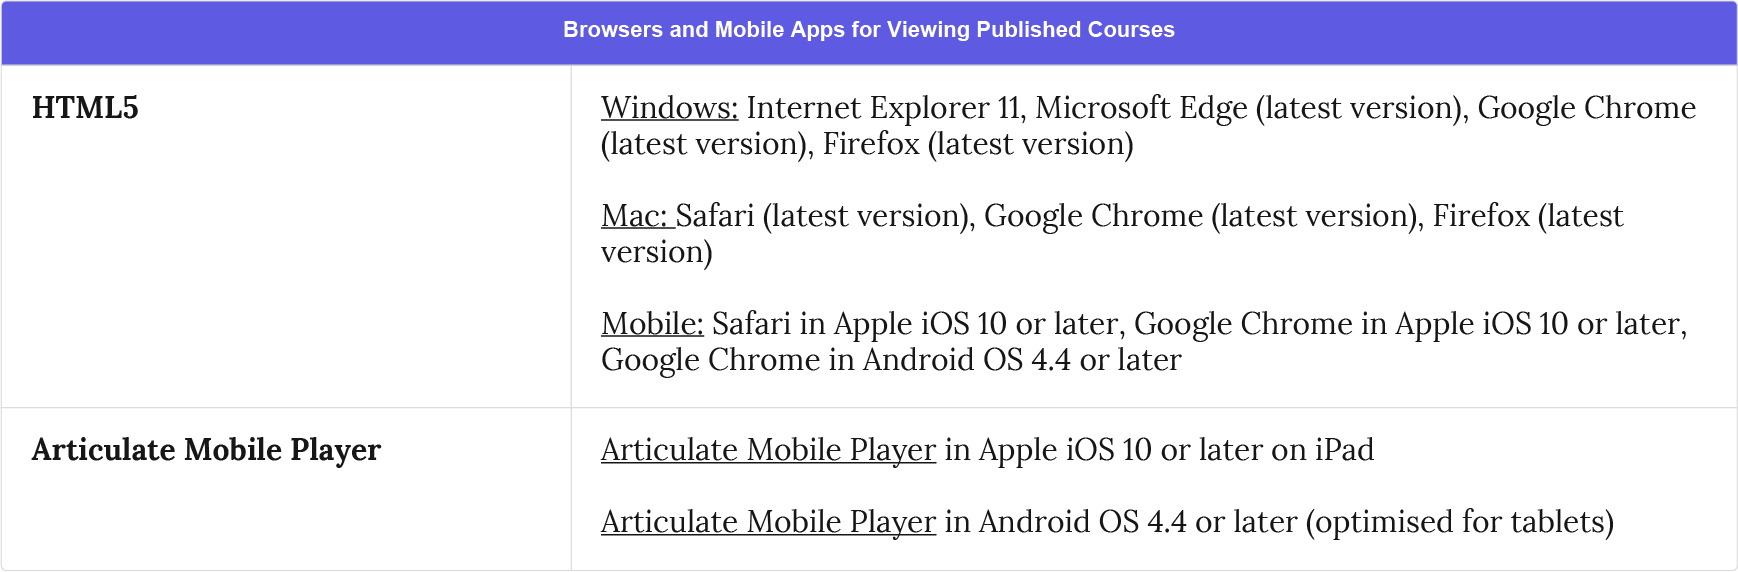 Browsers and Mobile apps for viewing published courses